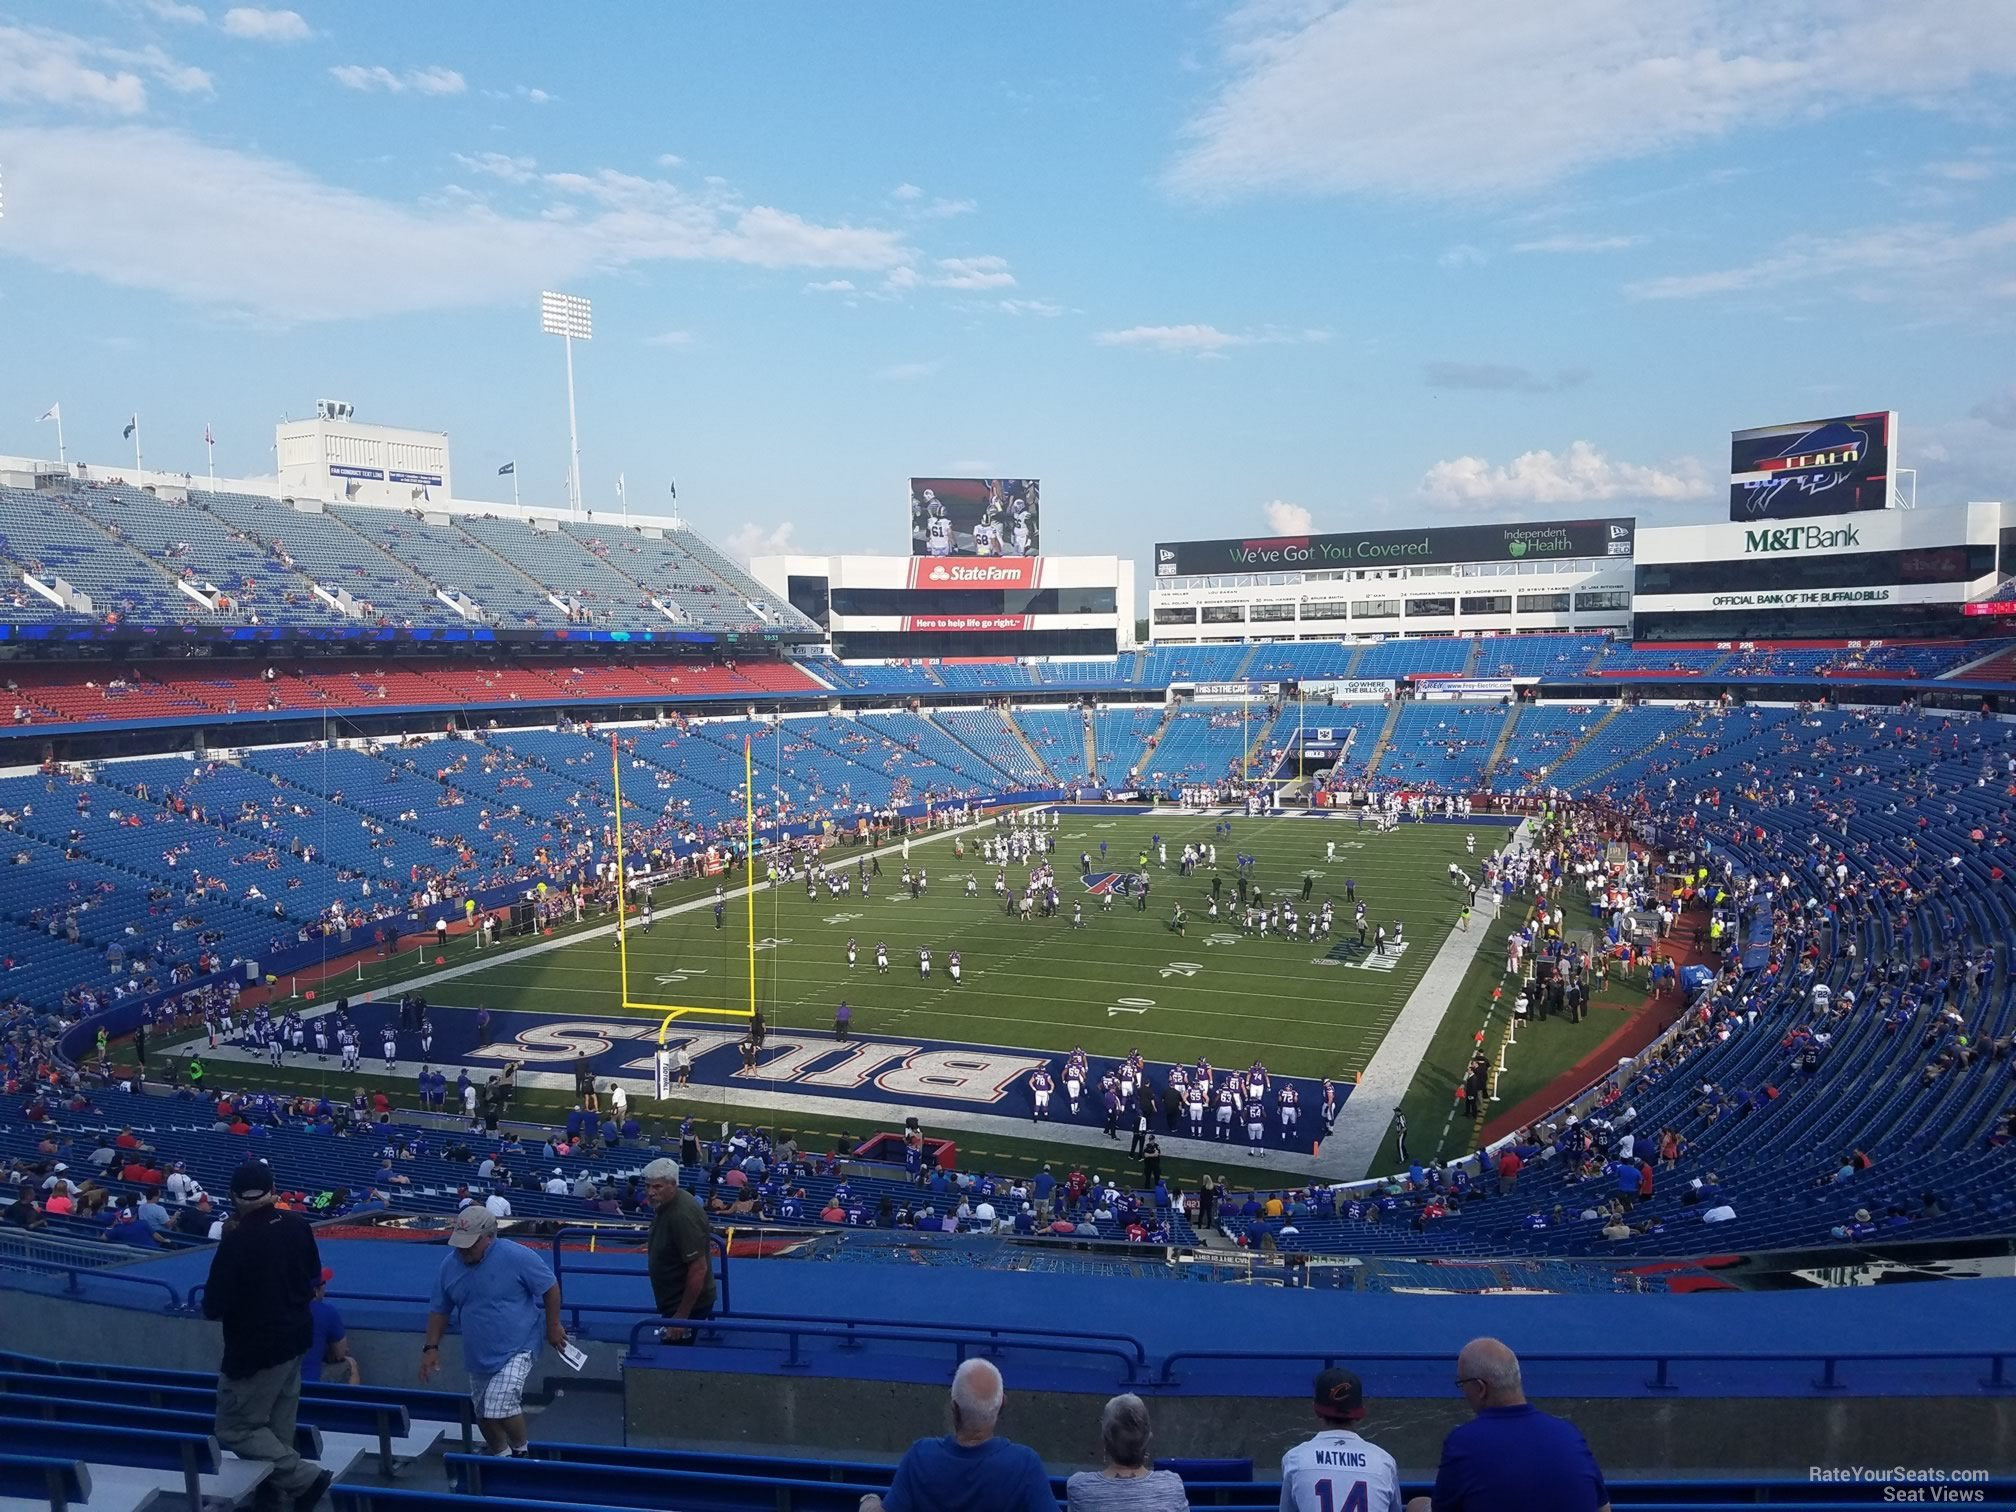 Section 242 seat view